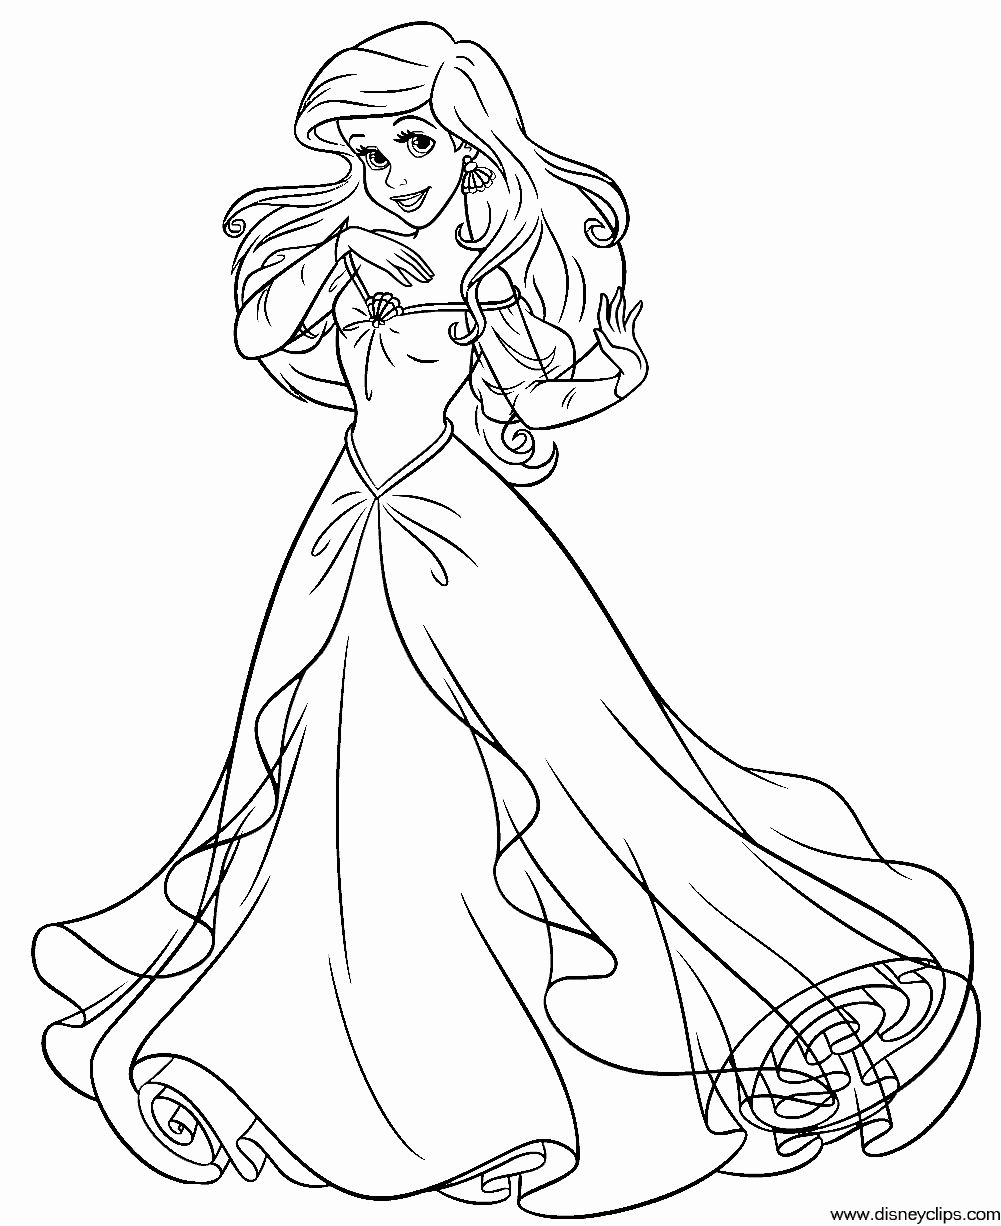 Disney Princess Adult Coloring Book Awesome Ariel Coloring Page Ariel In 2020 Disney Coloring Pages Ariel Coloring Pages Ariel Color